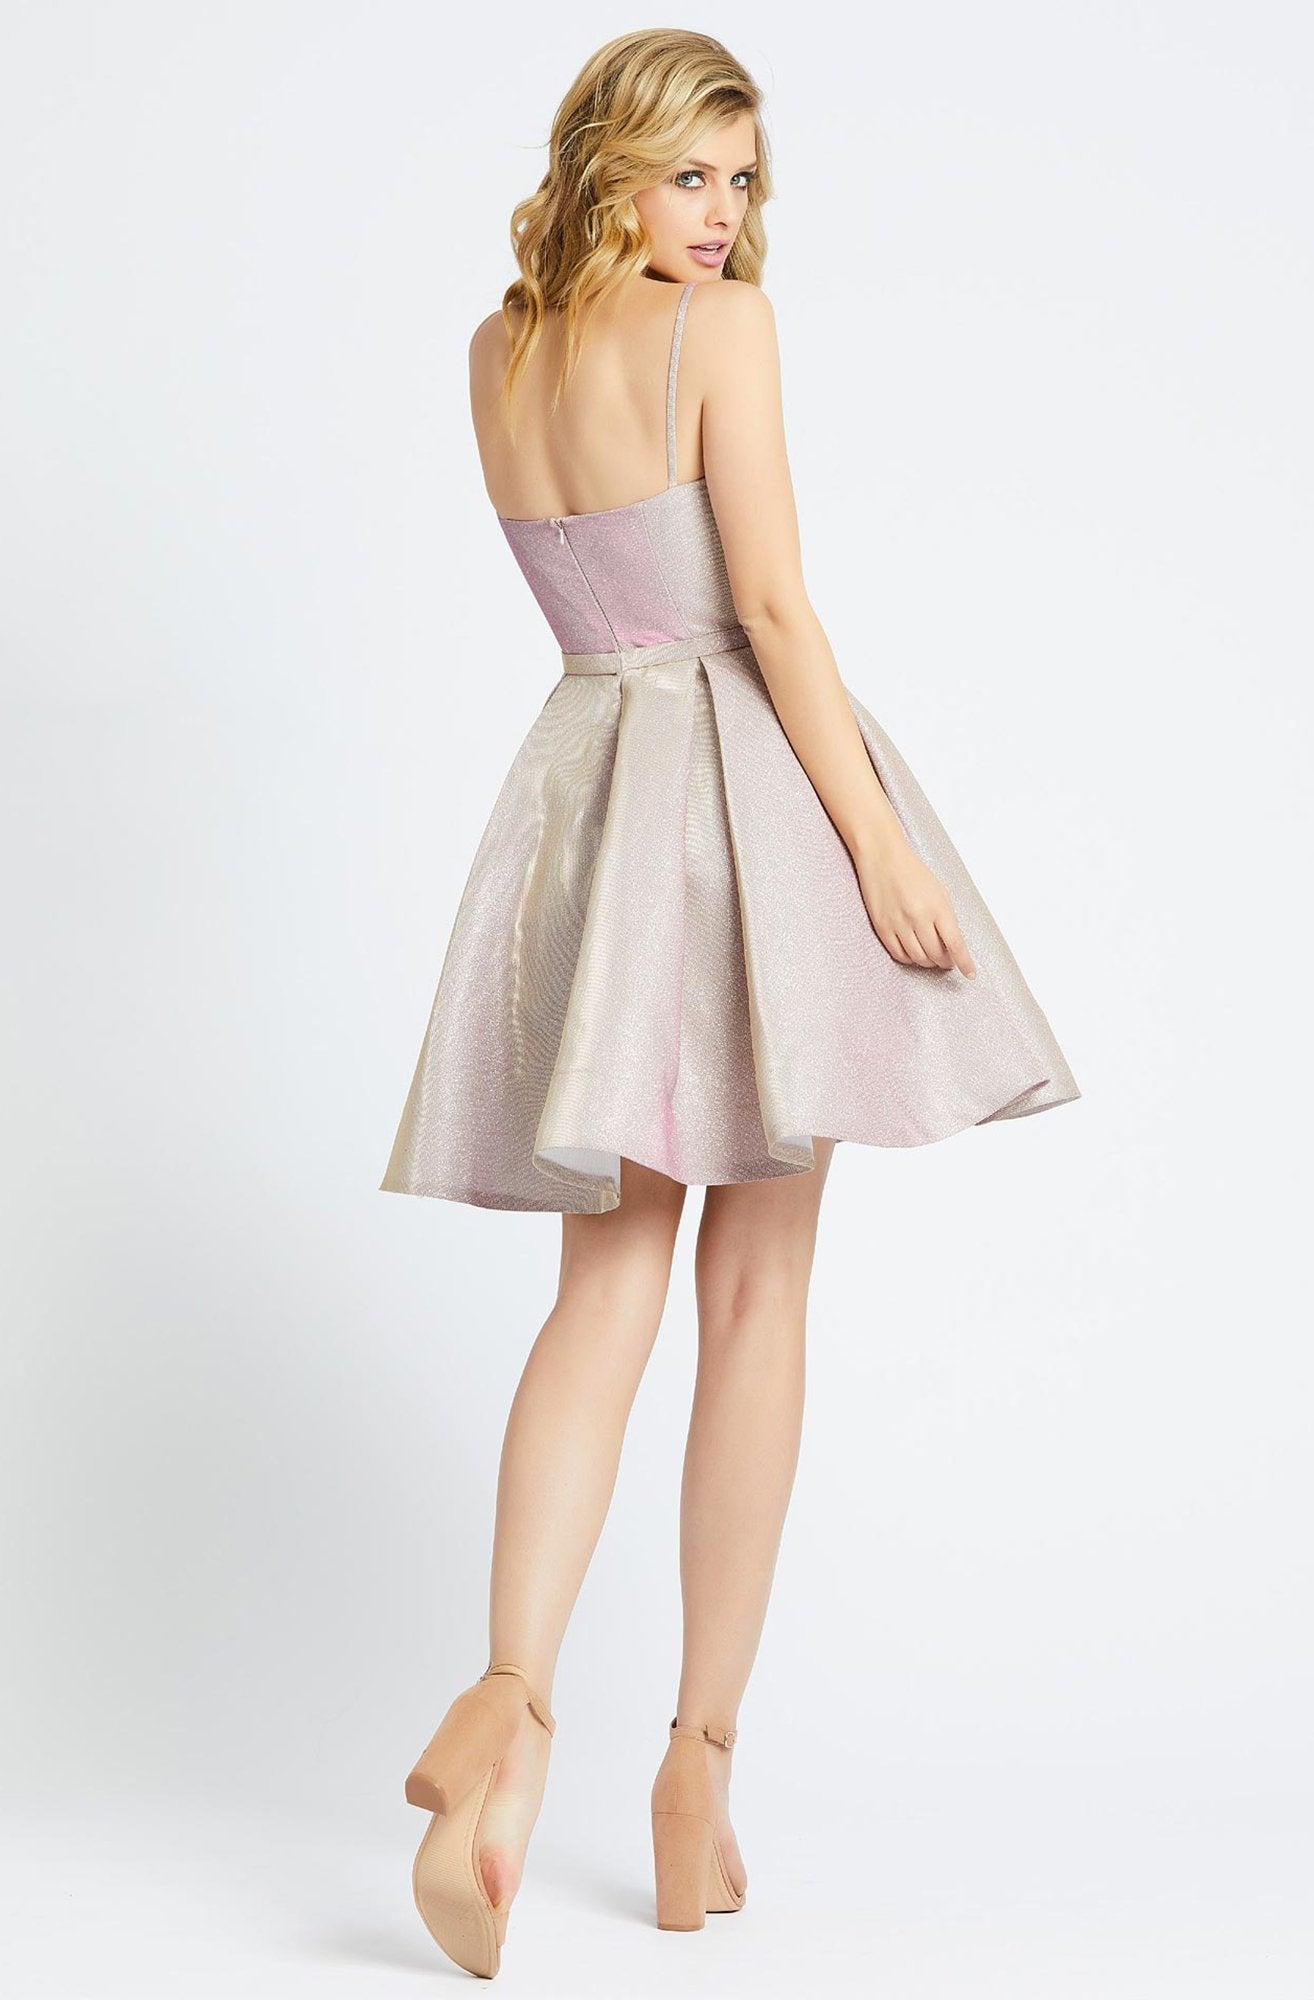 Ieena Duggal - 25982I Fitted Scoop A-Line Cocktail Dress in Pink